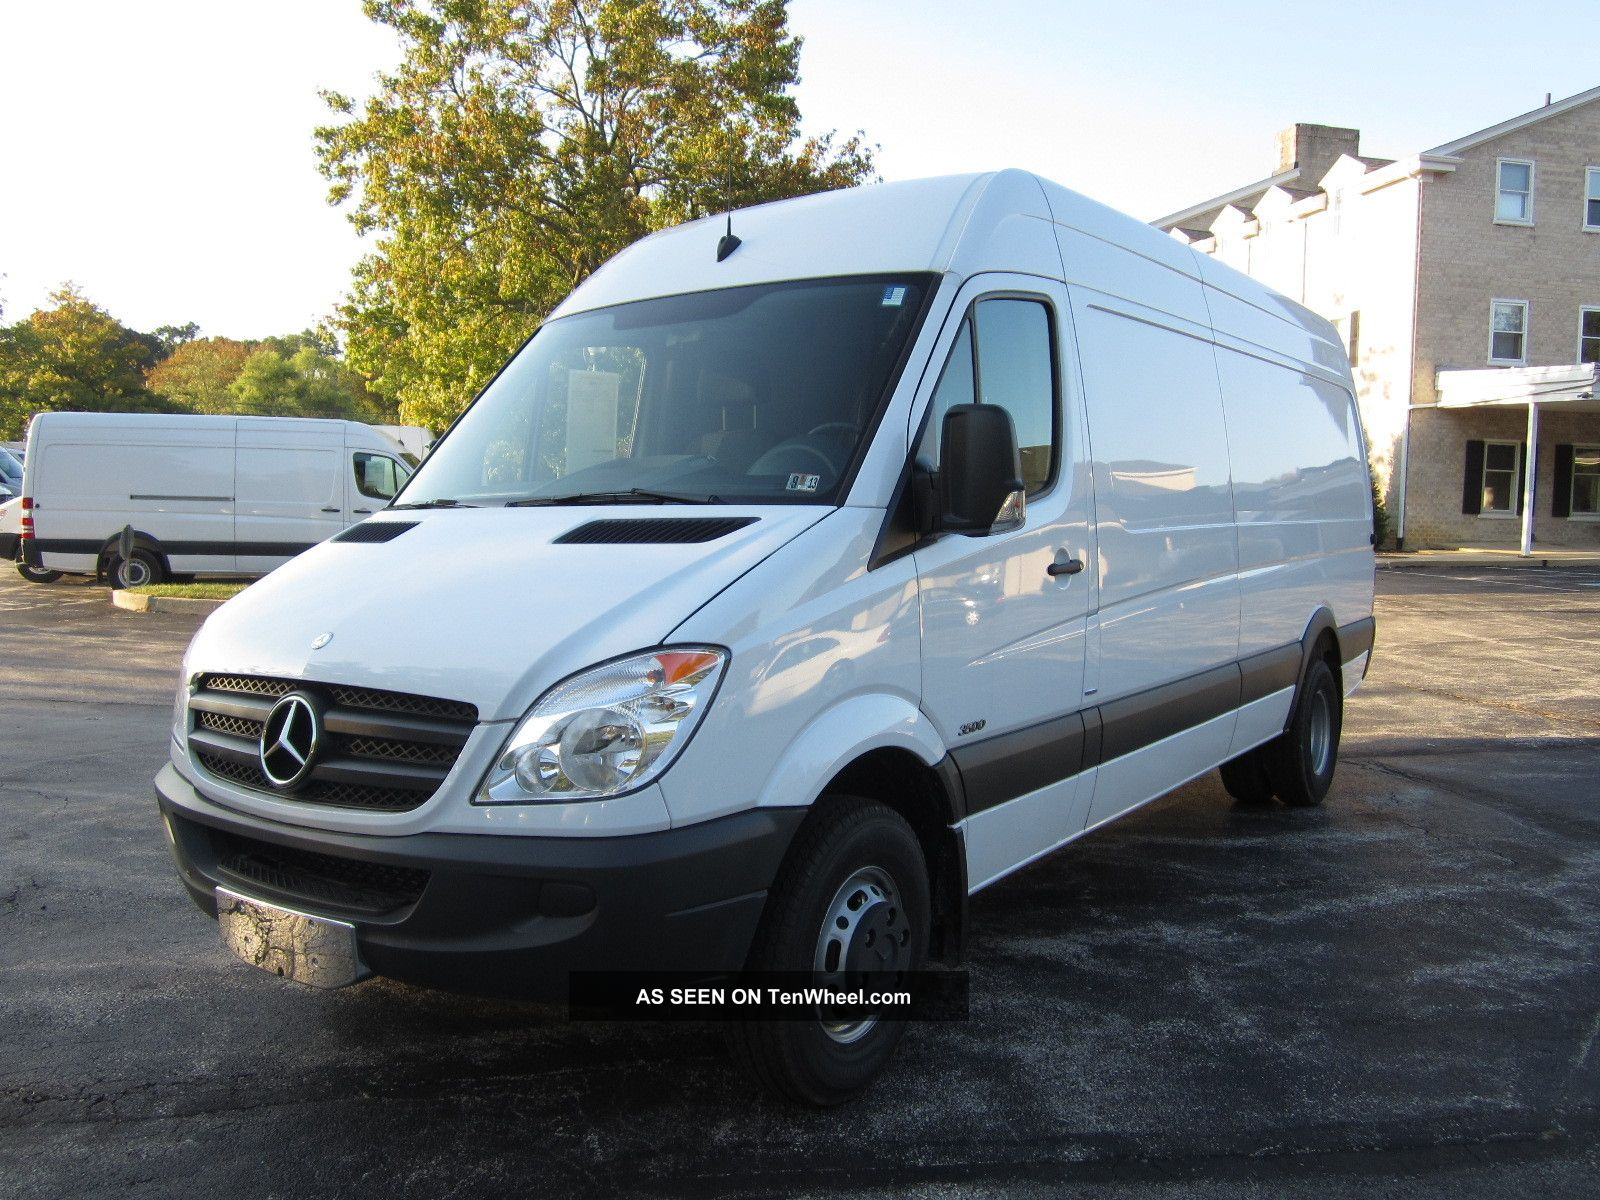 2012 mercedes benz sprinter 3500 heavy duty 170 wb van ForMercedes Benz 3500 Sprinter